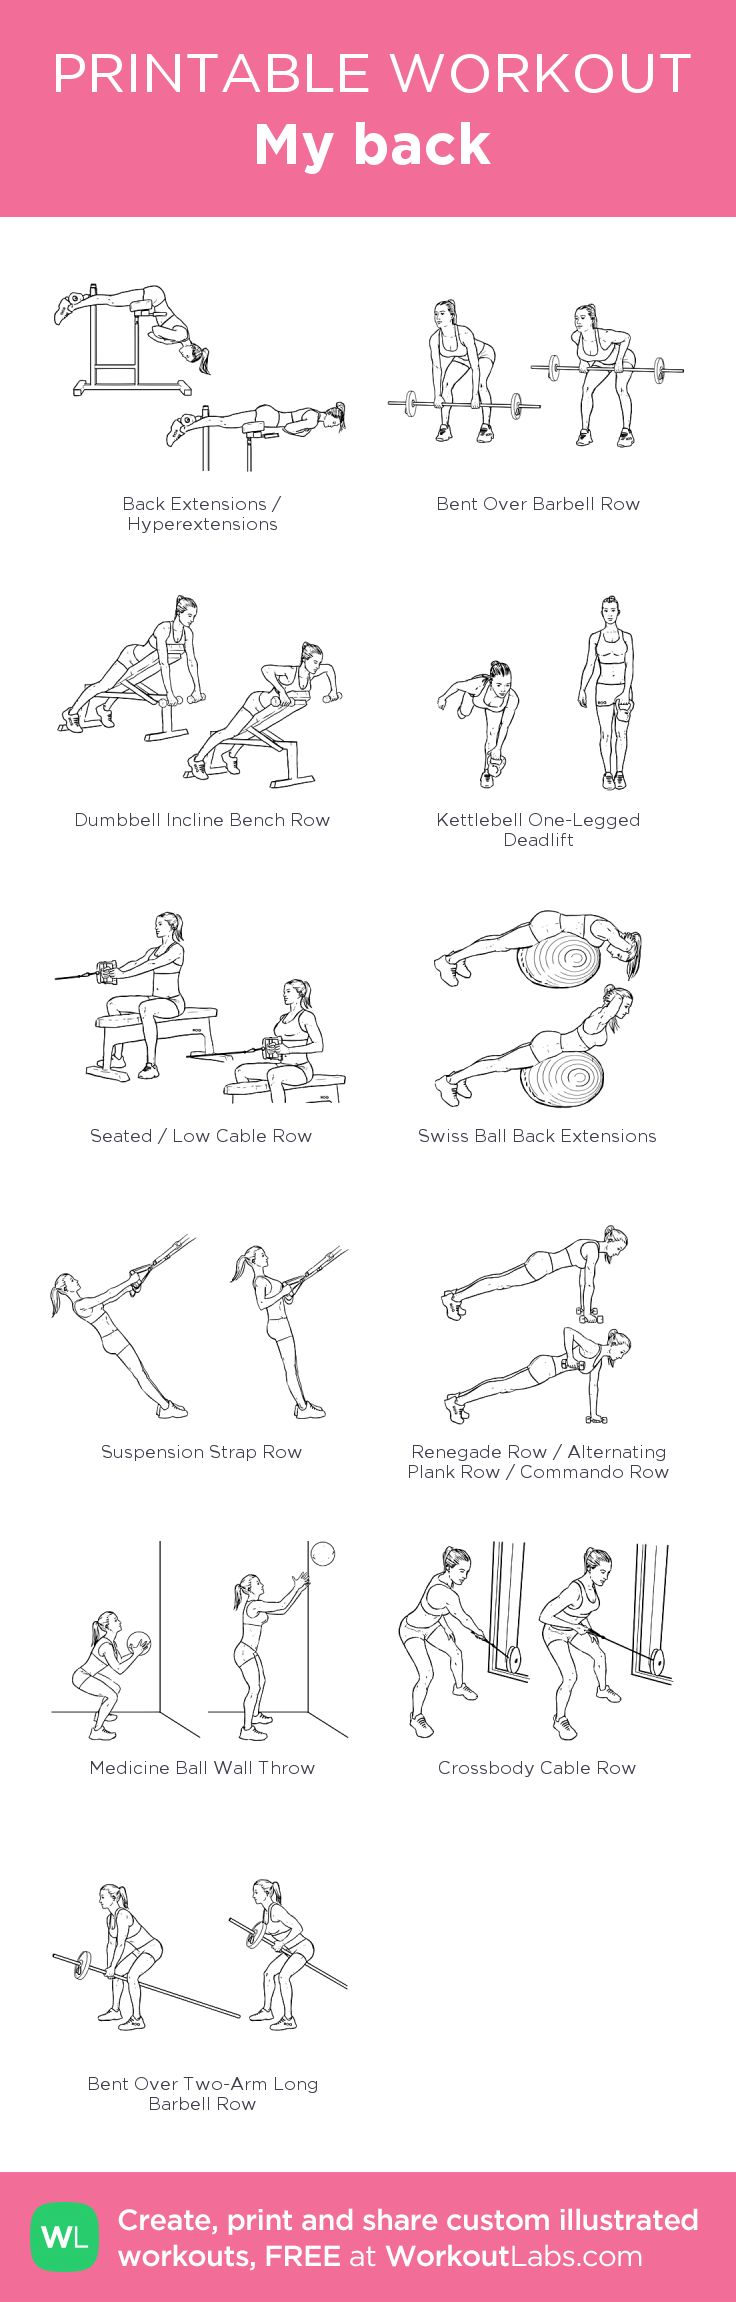 My back: my visual workout created at WorkoutLabs.com • Click through to customize and download as a FREE PDF! #customworkout